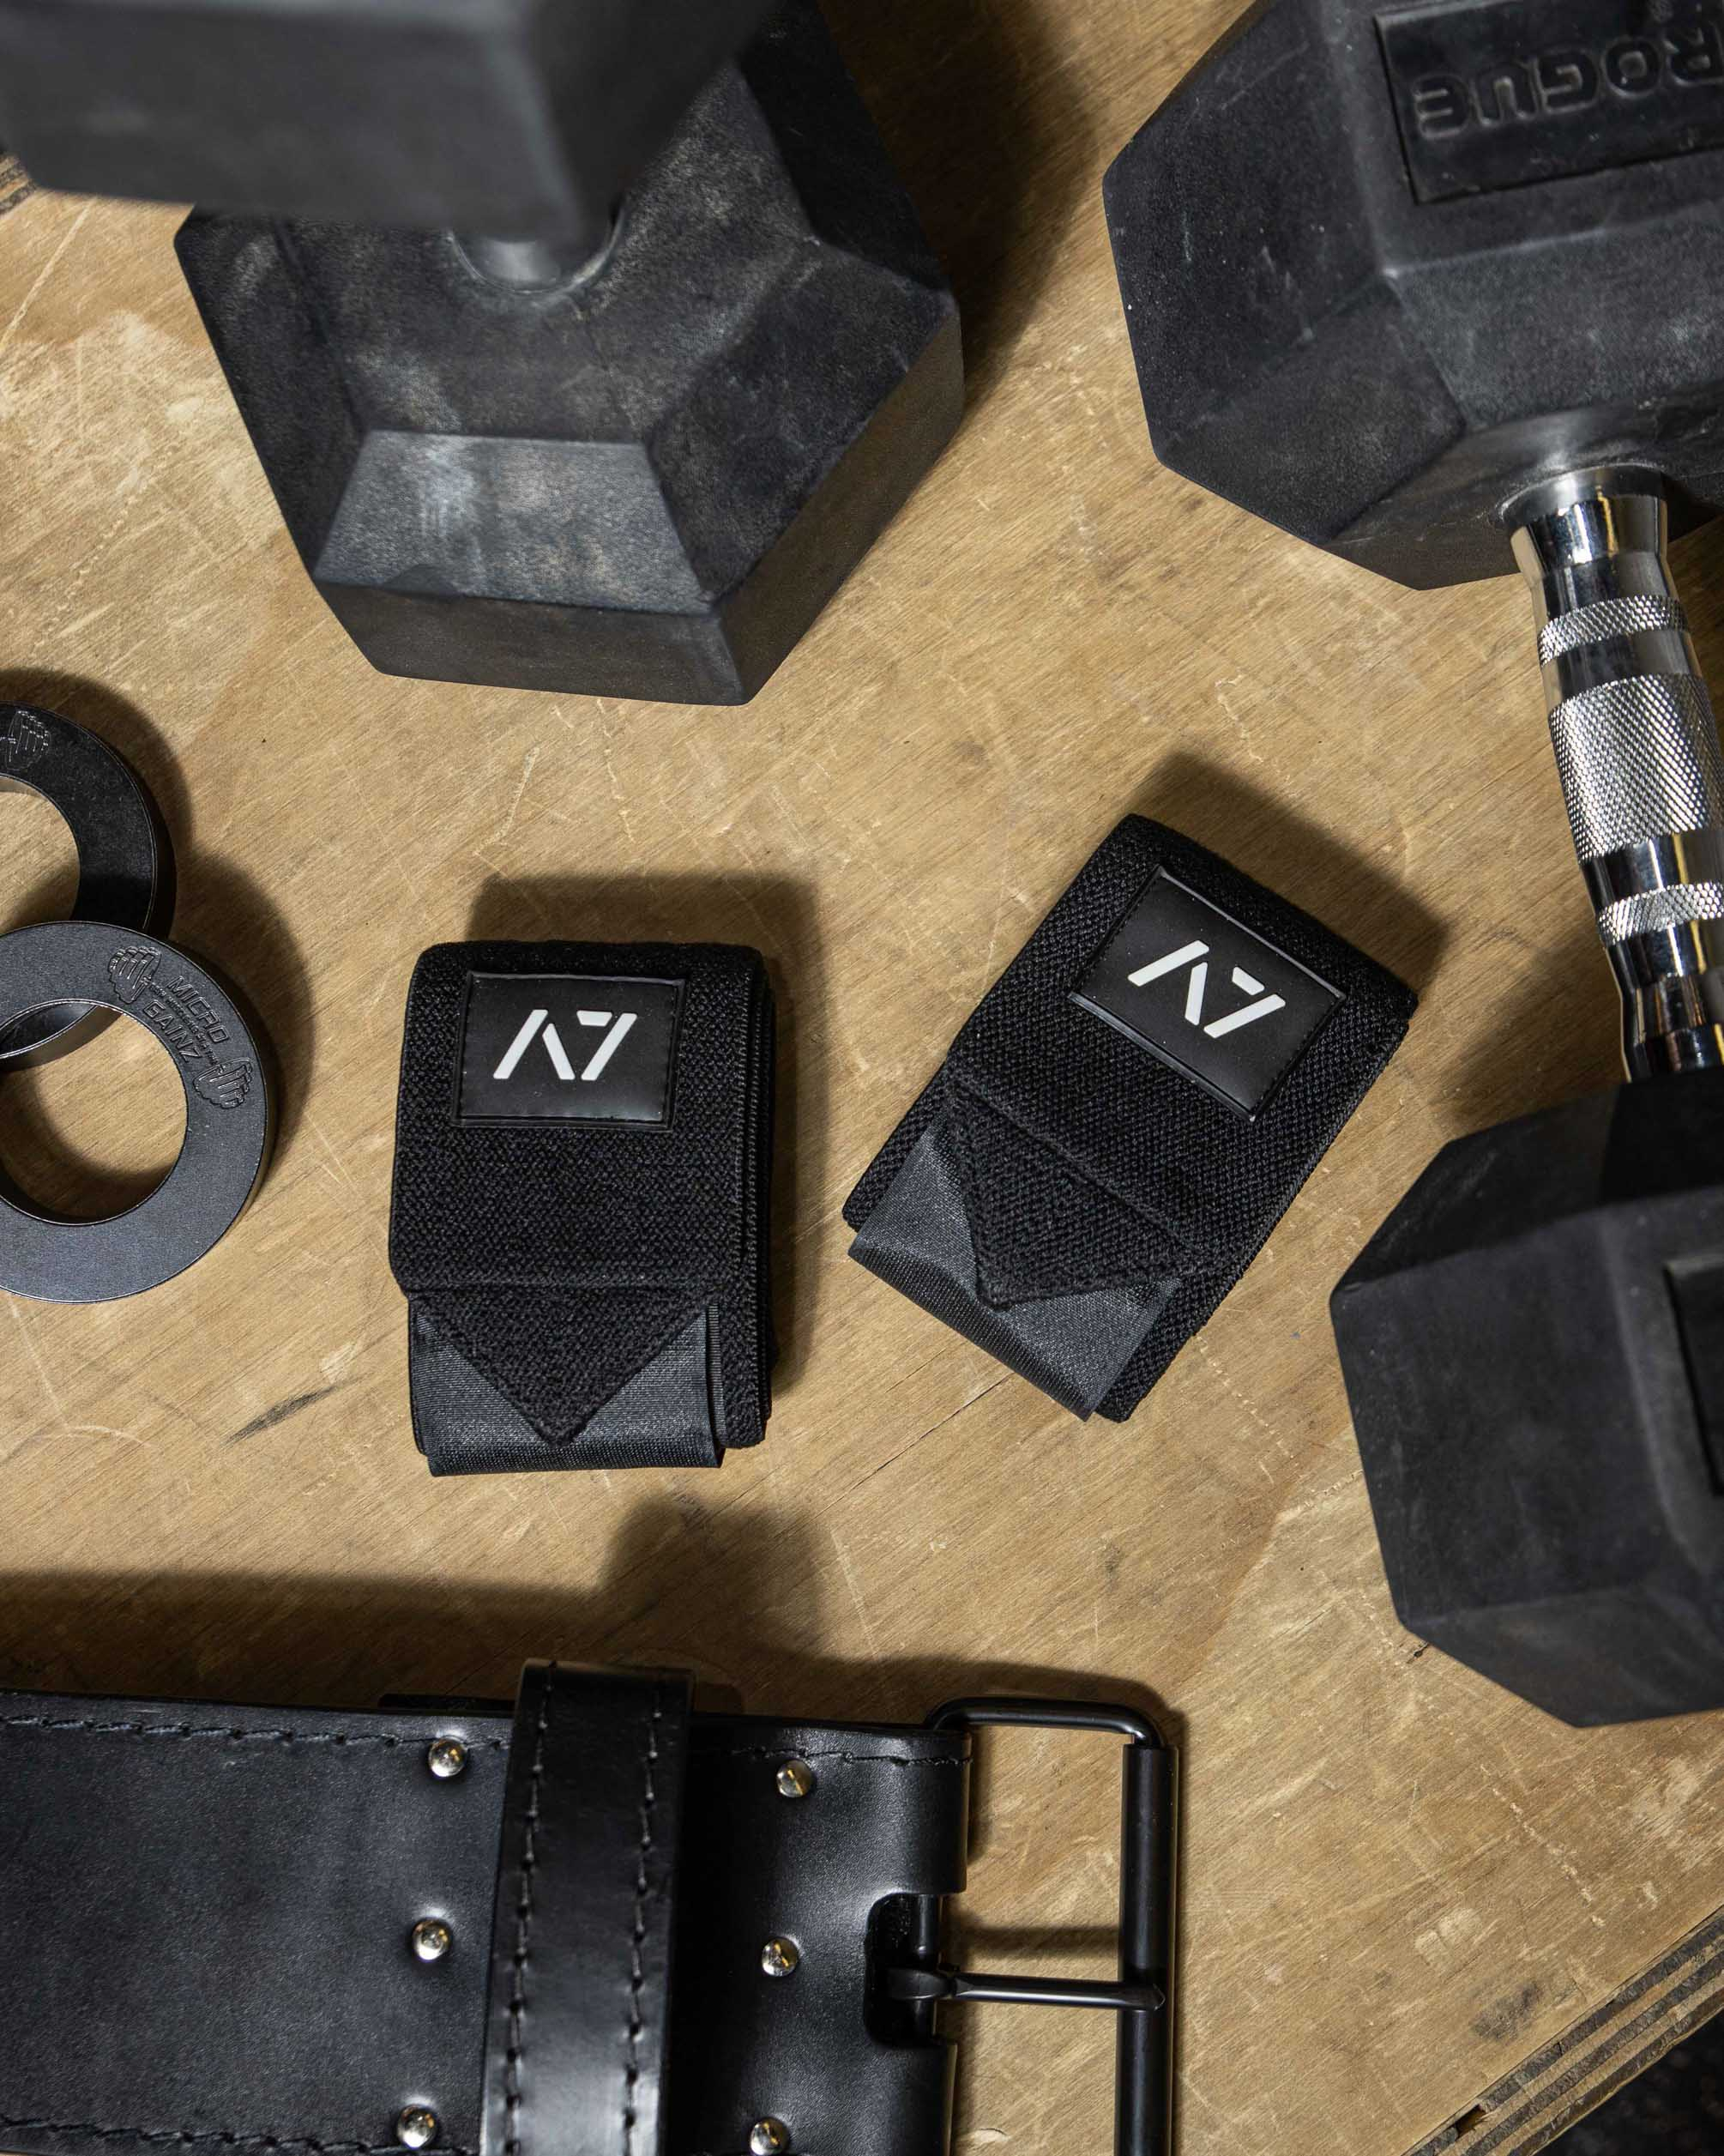 Weightlifting gear and clothes